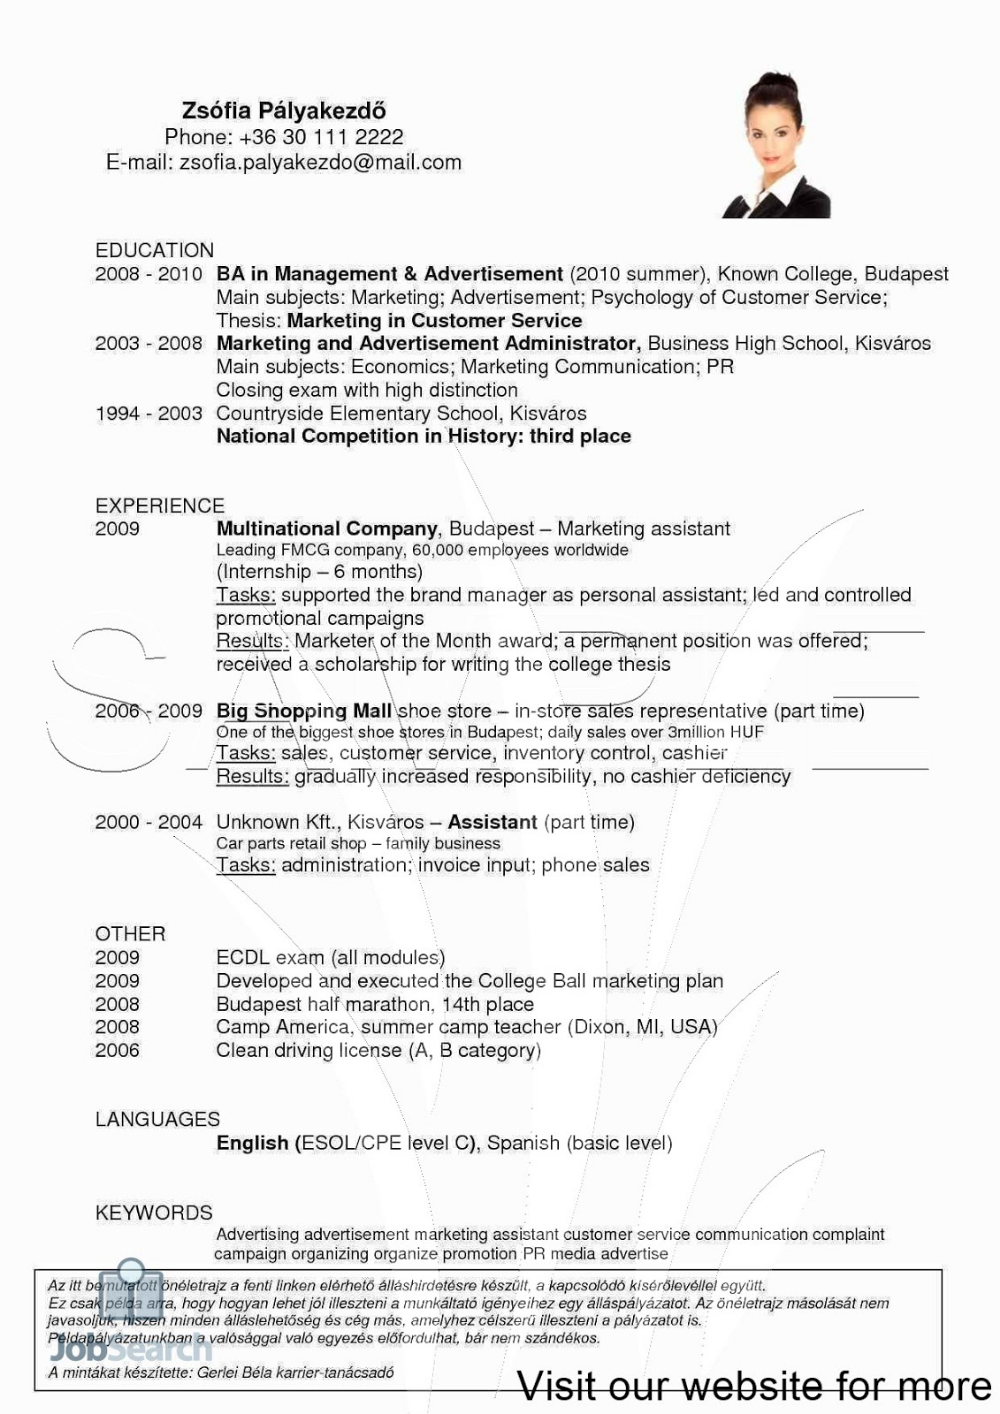 objective for resume clerical work in 2020 service desk engineer new teacher no experience business career